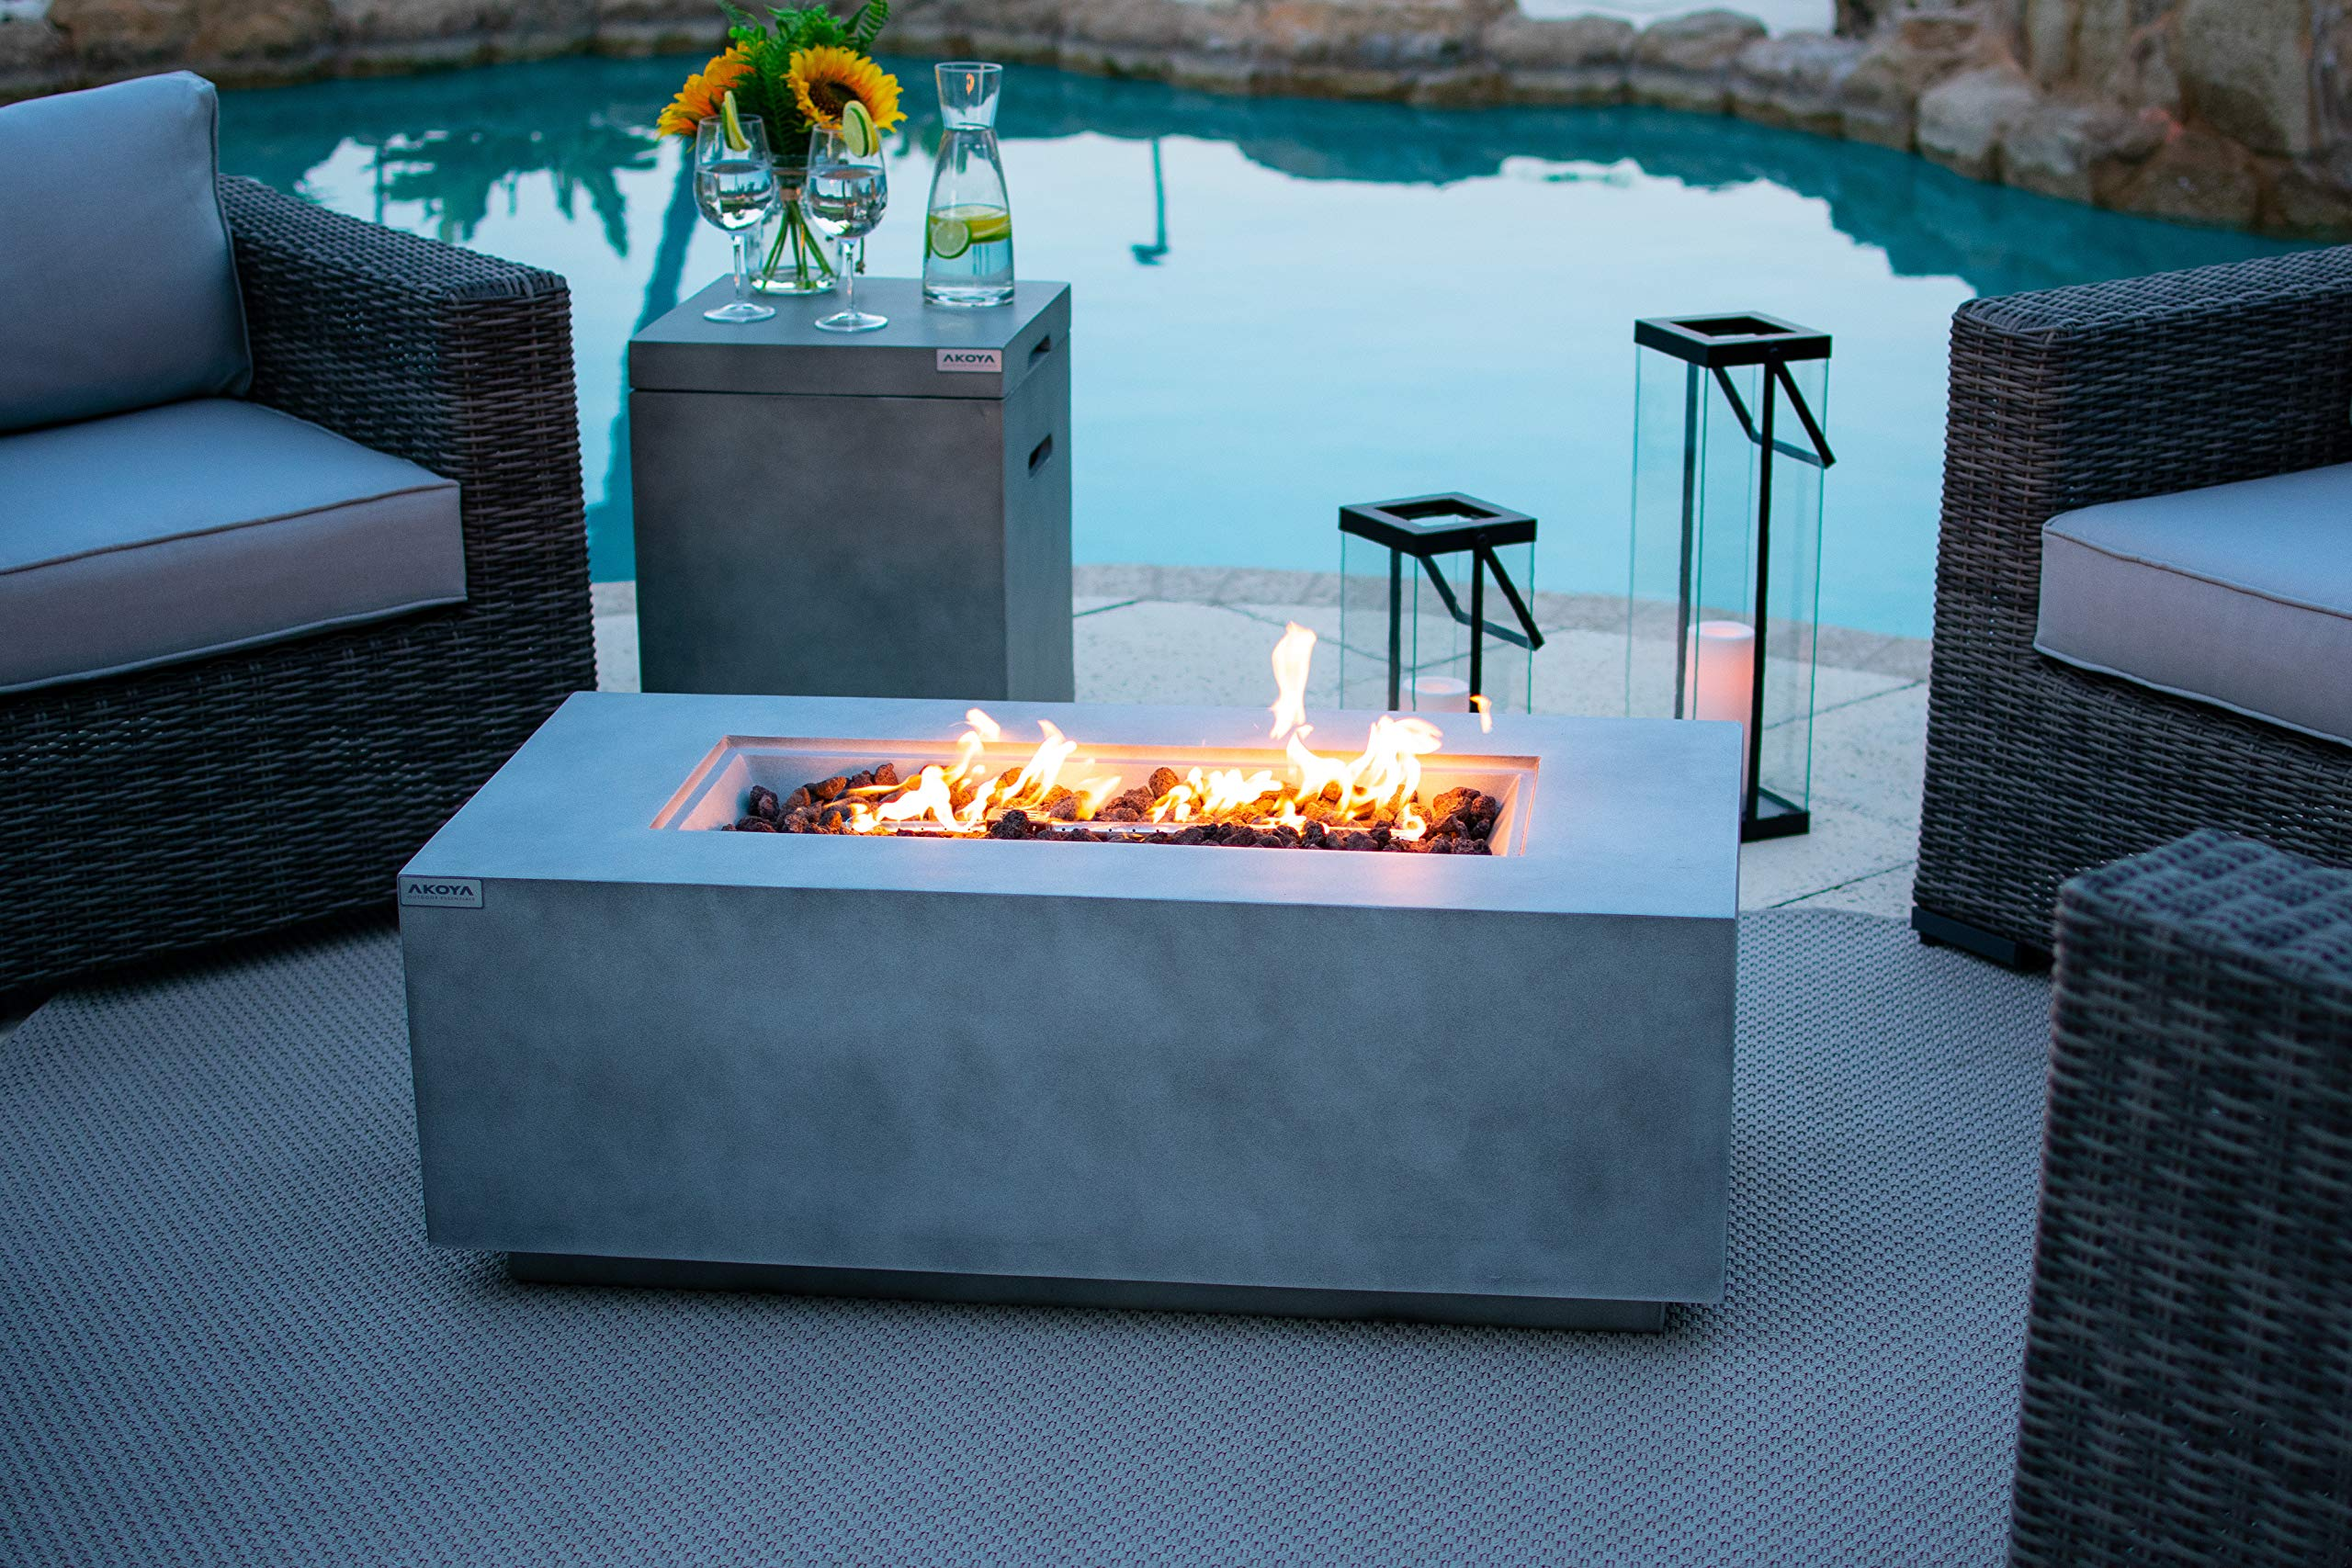 AKOYA Outdoor Essentials 42'' Fiber Concrete Rectangular Outdoor Propane Gas Fire Pit Table in Gray by AKOYA Outdoor Essentials